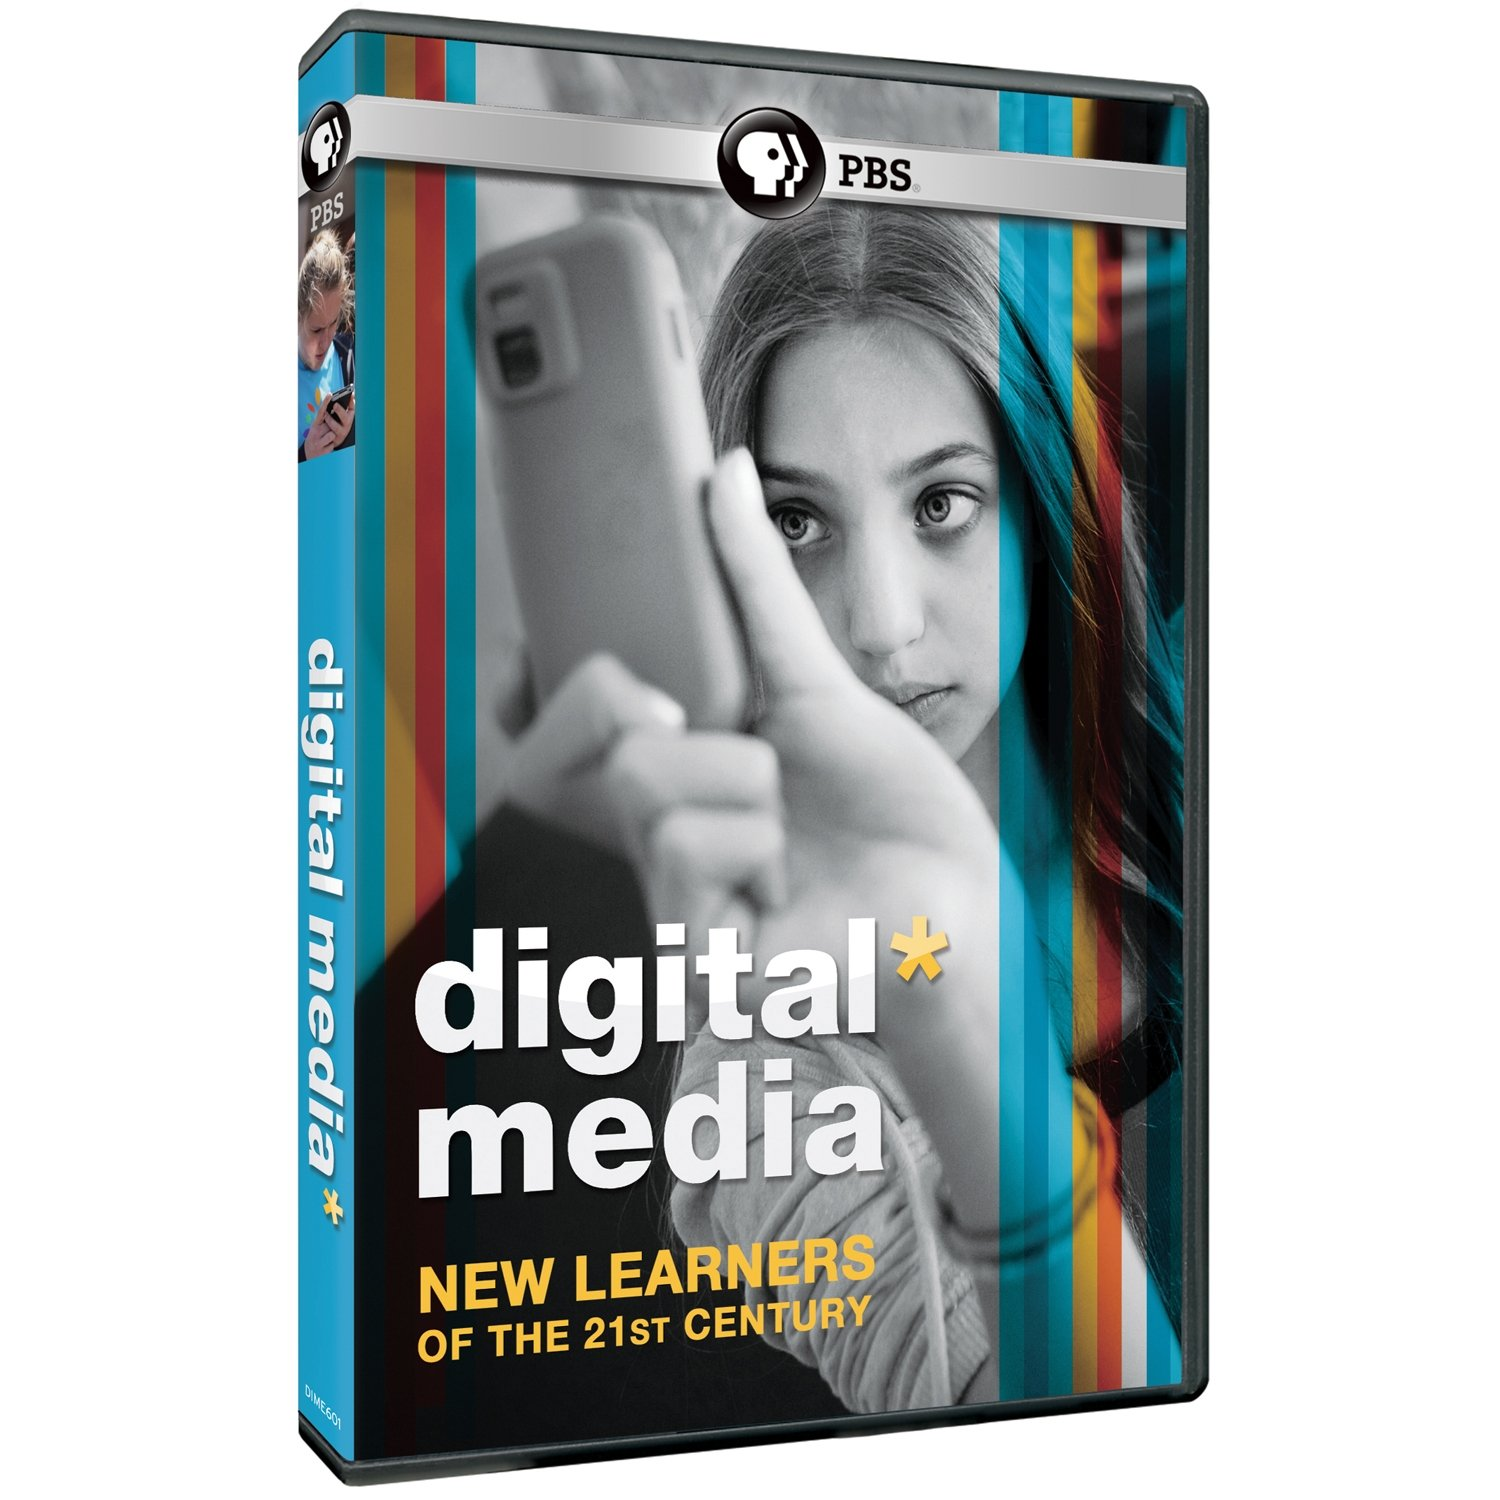 DVD : Digital Media: New Learners Of The 21st Century (DVD)